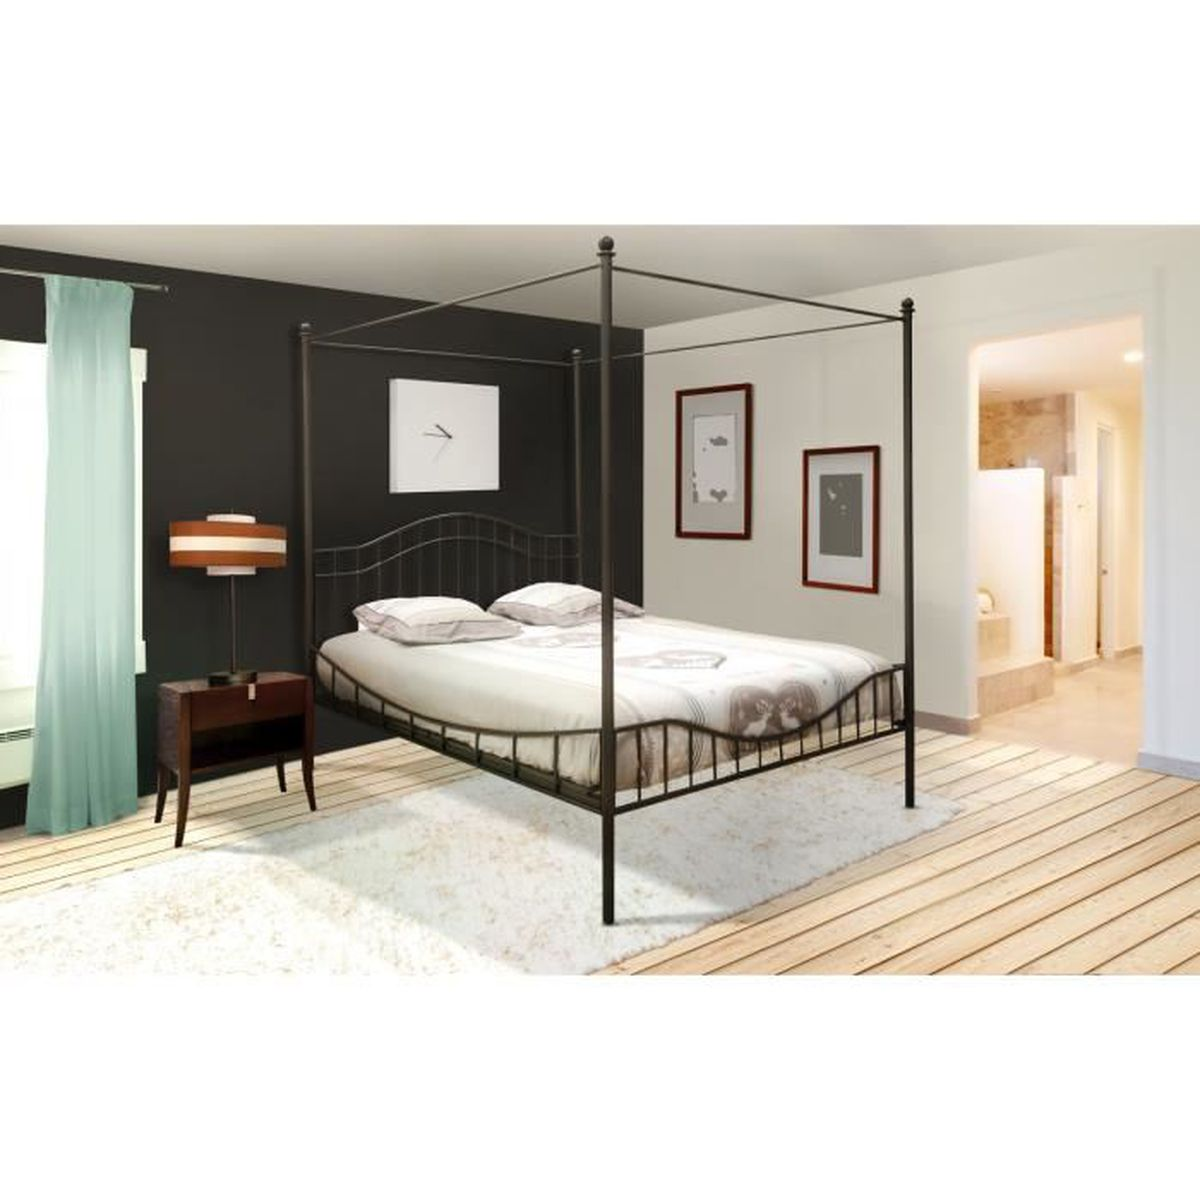 lit baldaquin 2 personnes 140x190 cm noir avec sommier. Black Bedroom Furniture Sets. Home Design Ideas